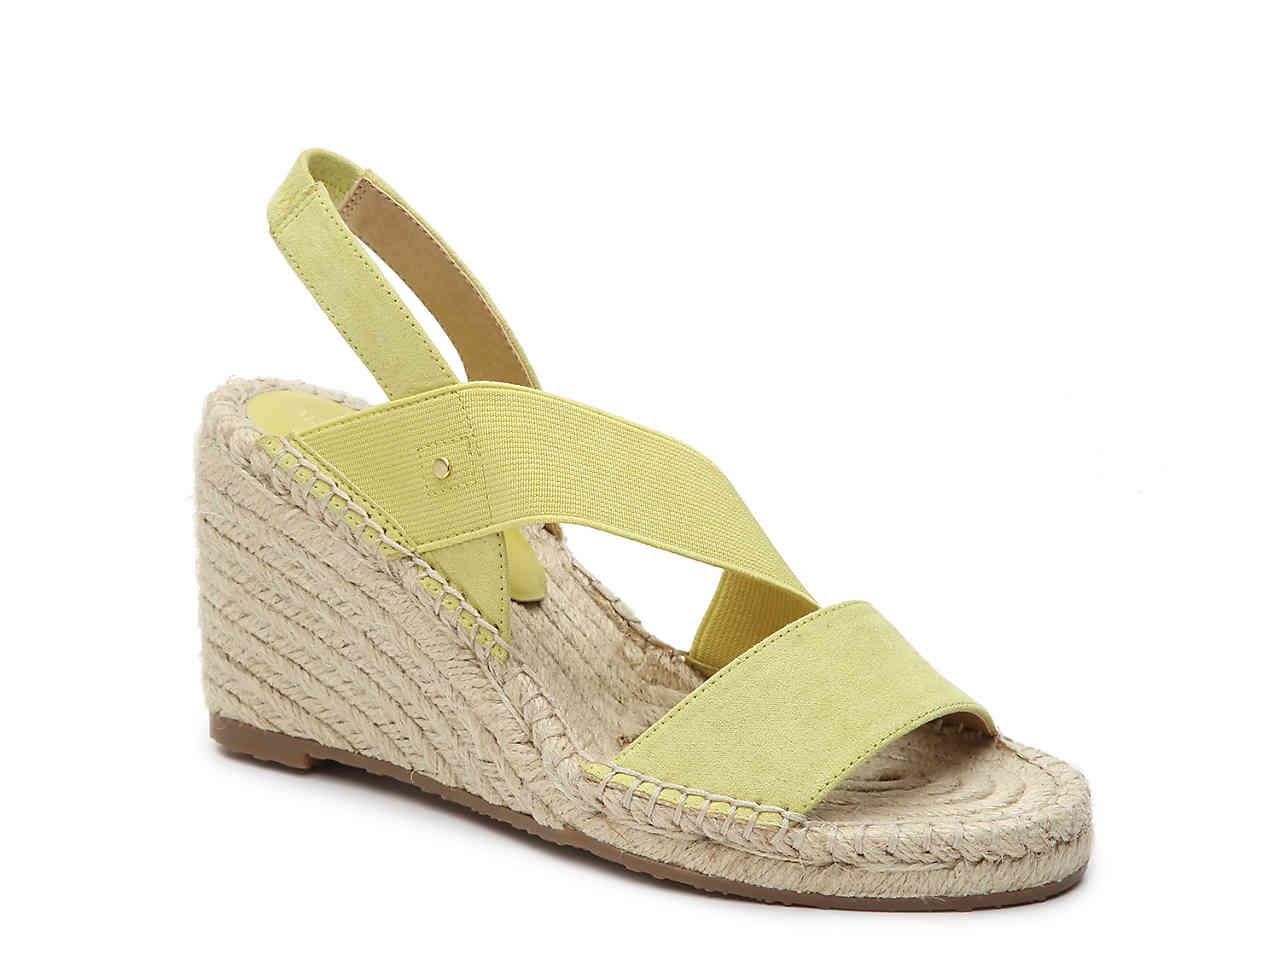 a354706cbaa0 Lyst - Adrienne Vittadini Crete Espadrille Wedge Sandal in Yellow